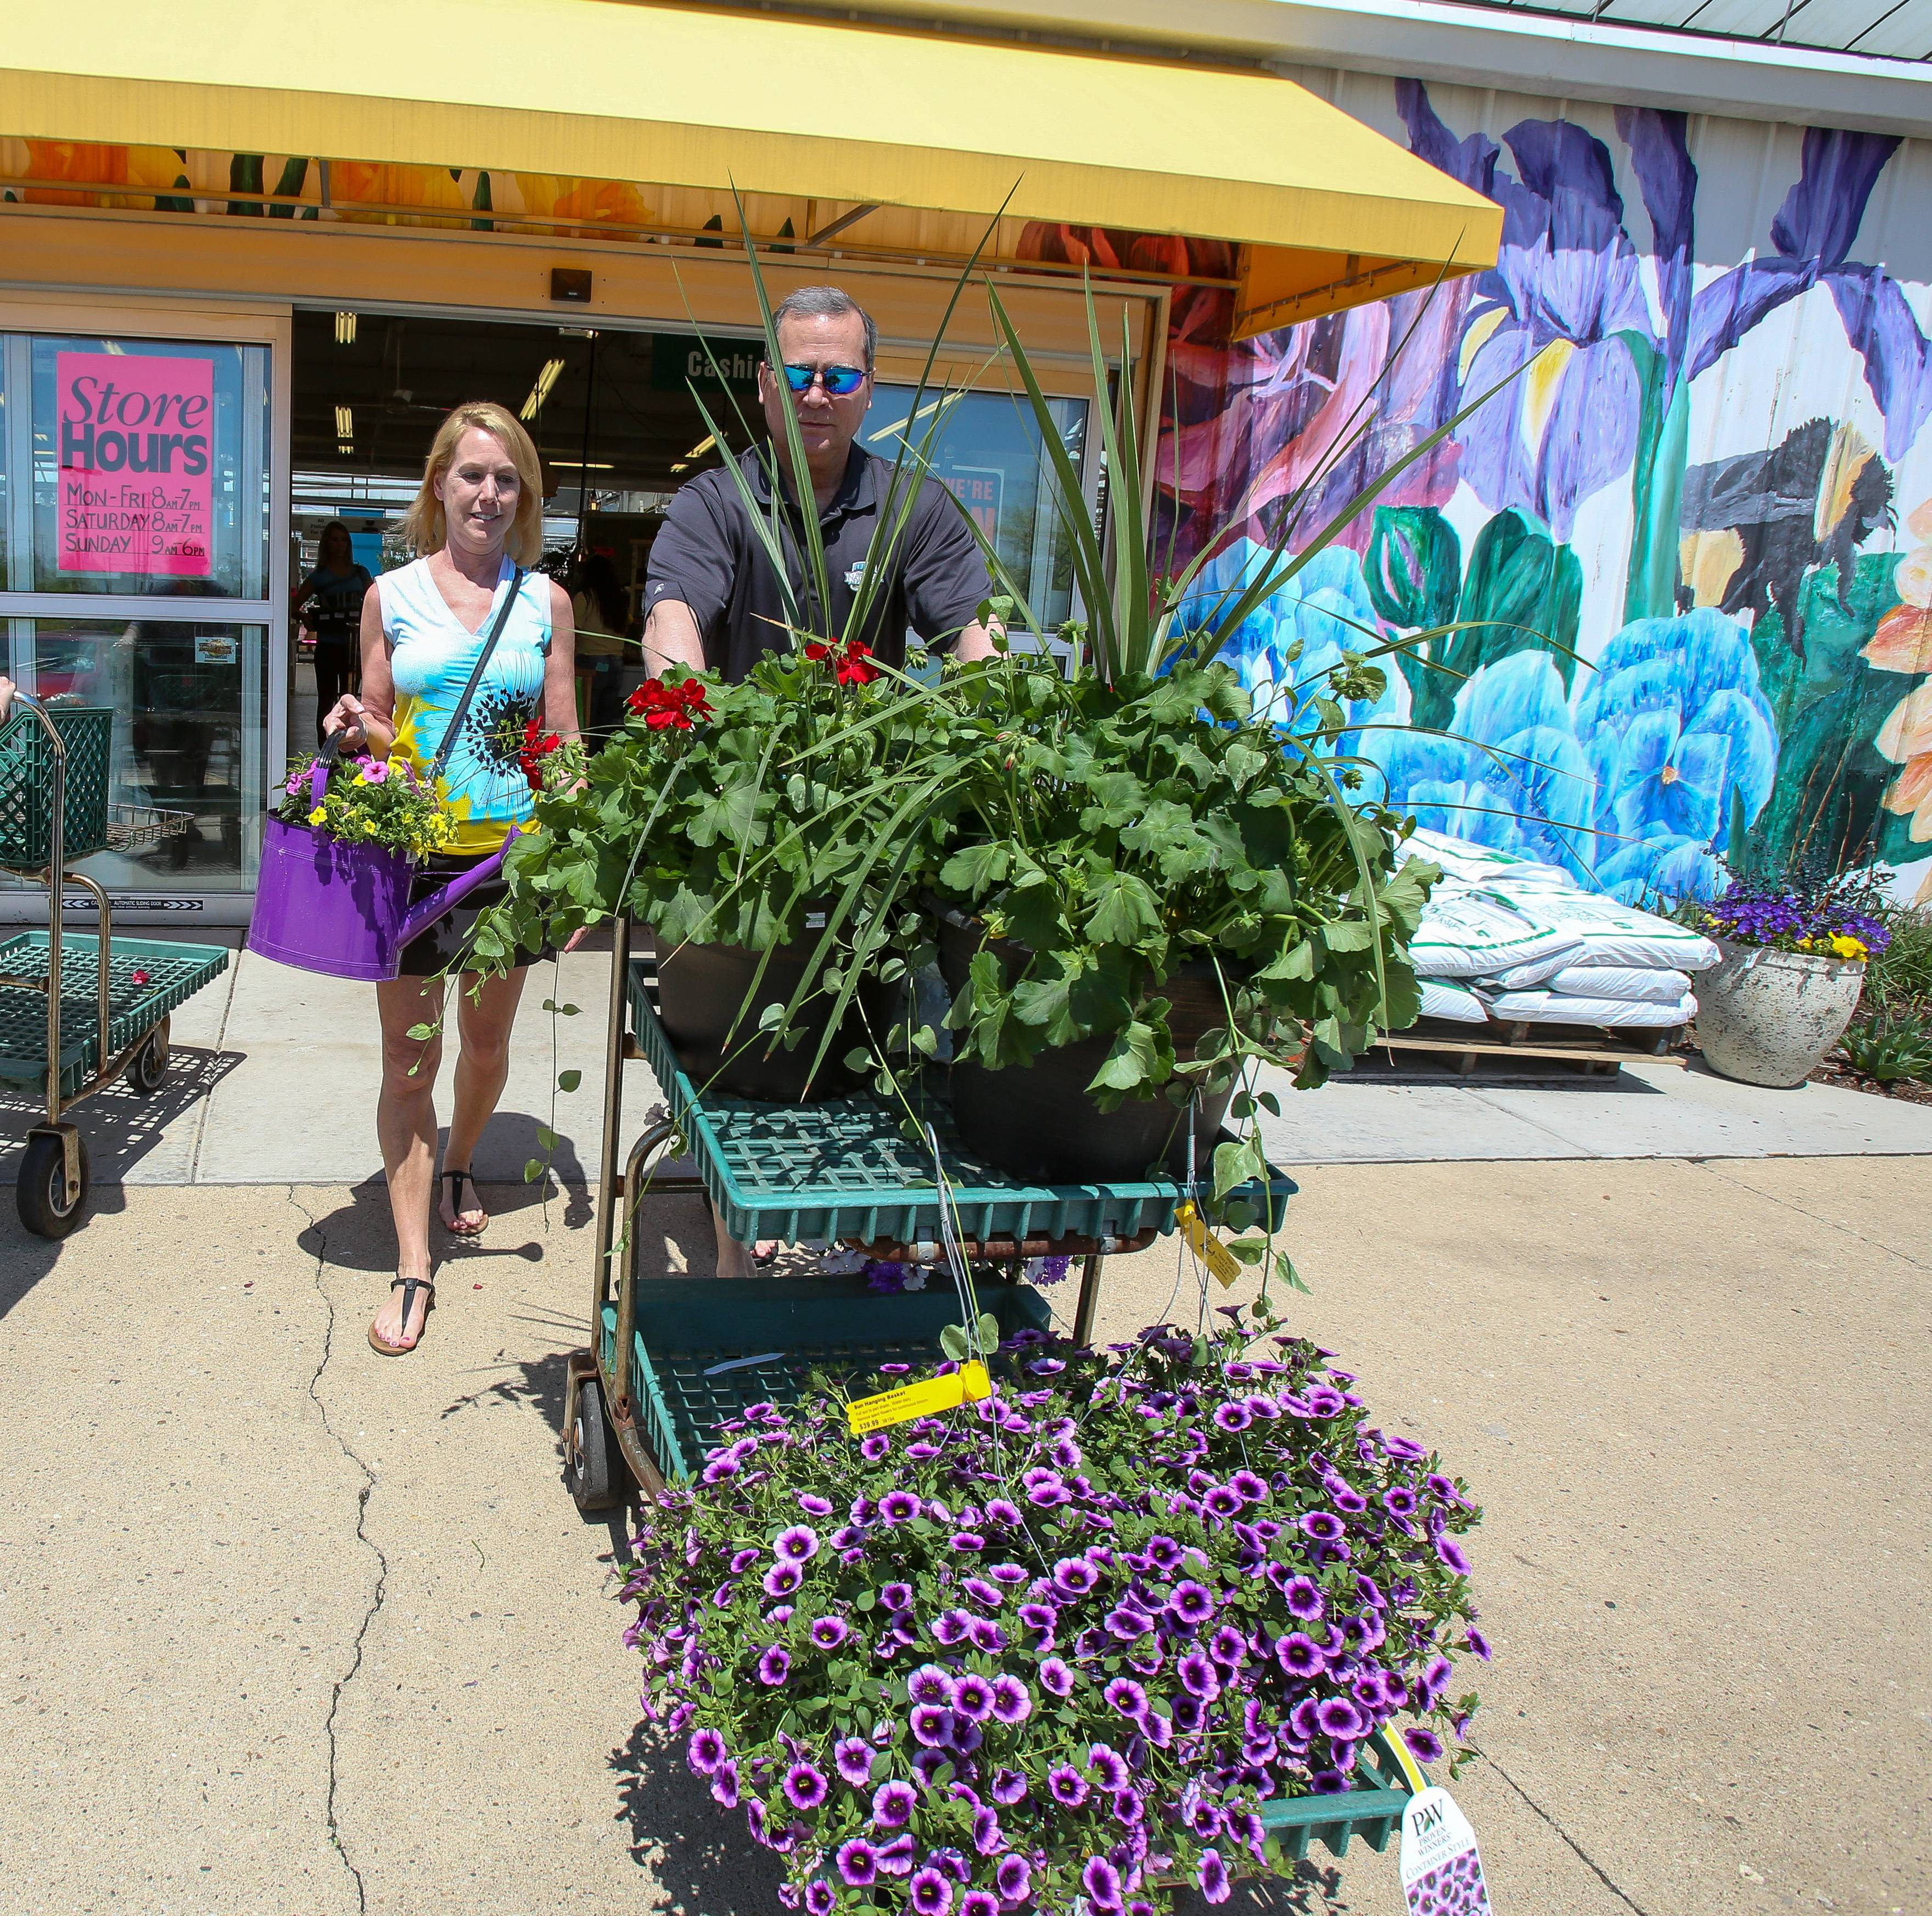 Sue Kahanie and John Lopuszanski of Hoffman Estates leave with plants and flowers from the Knupper Nursery & Landscape in Palatine on Wednesday. After 88 years in business, the Northwest suburban mainstay is closing June 16.